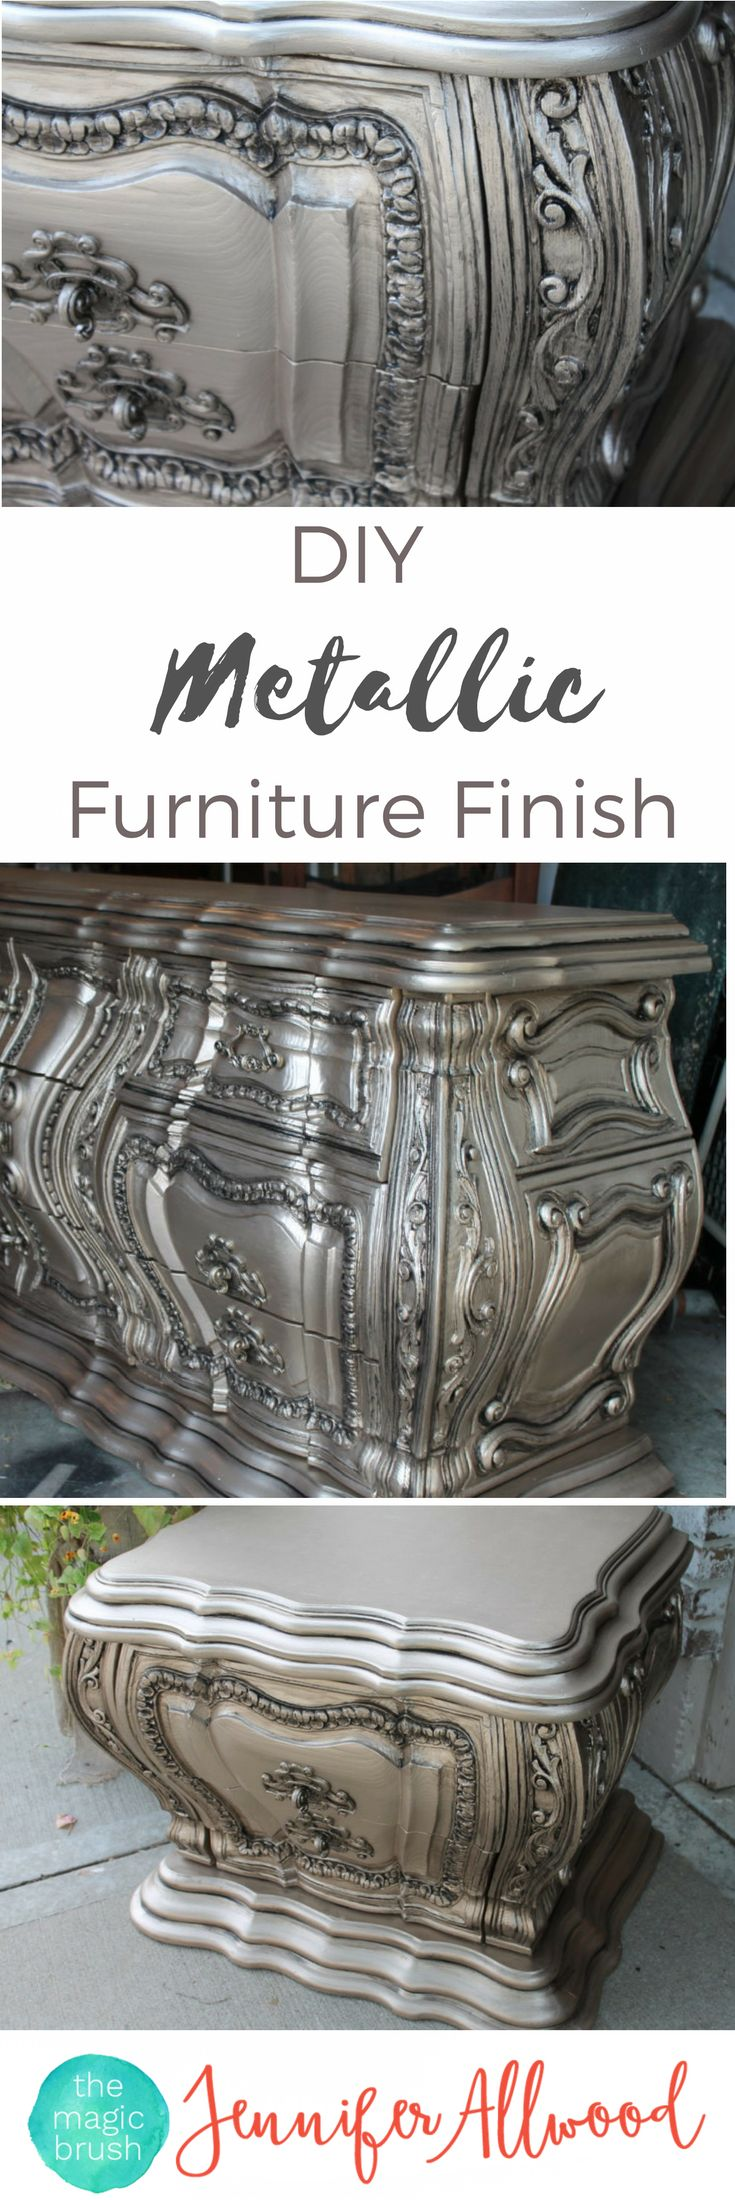 diy metallic furniture. how to paint metallic furniture this is a gorgeous diy silver finish that looks diy